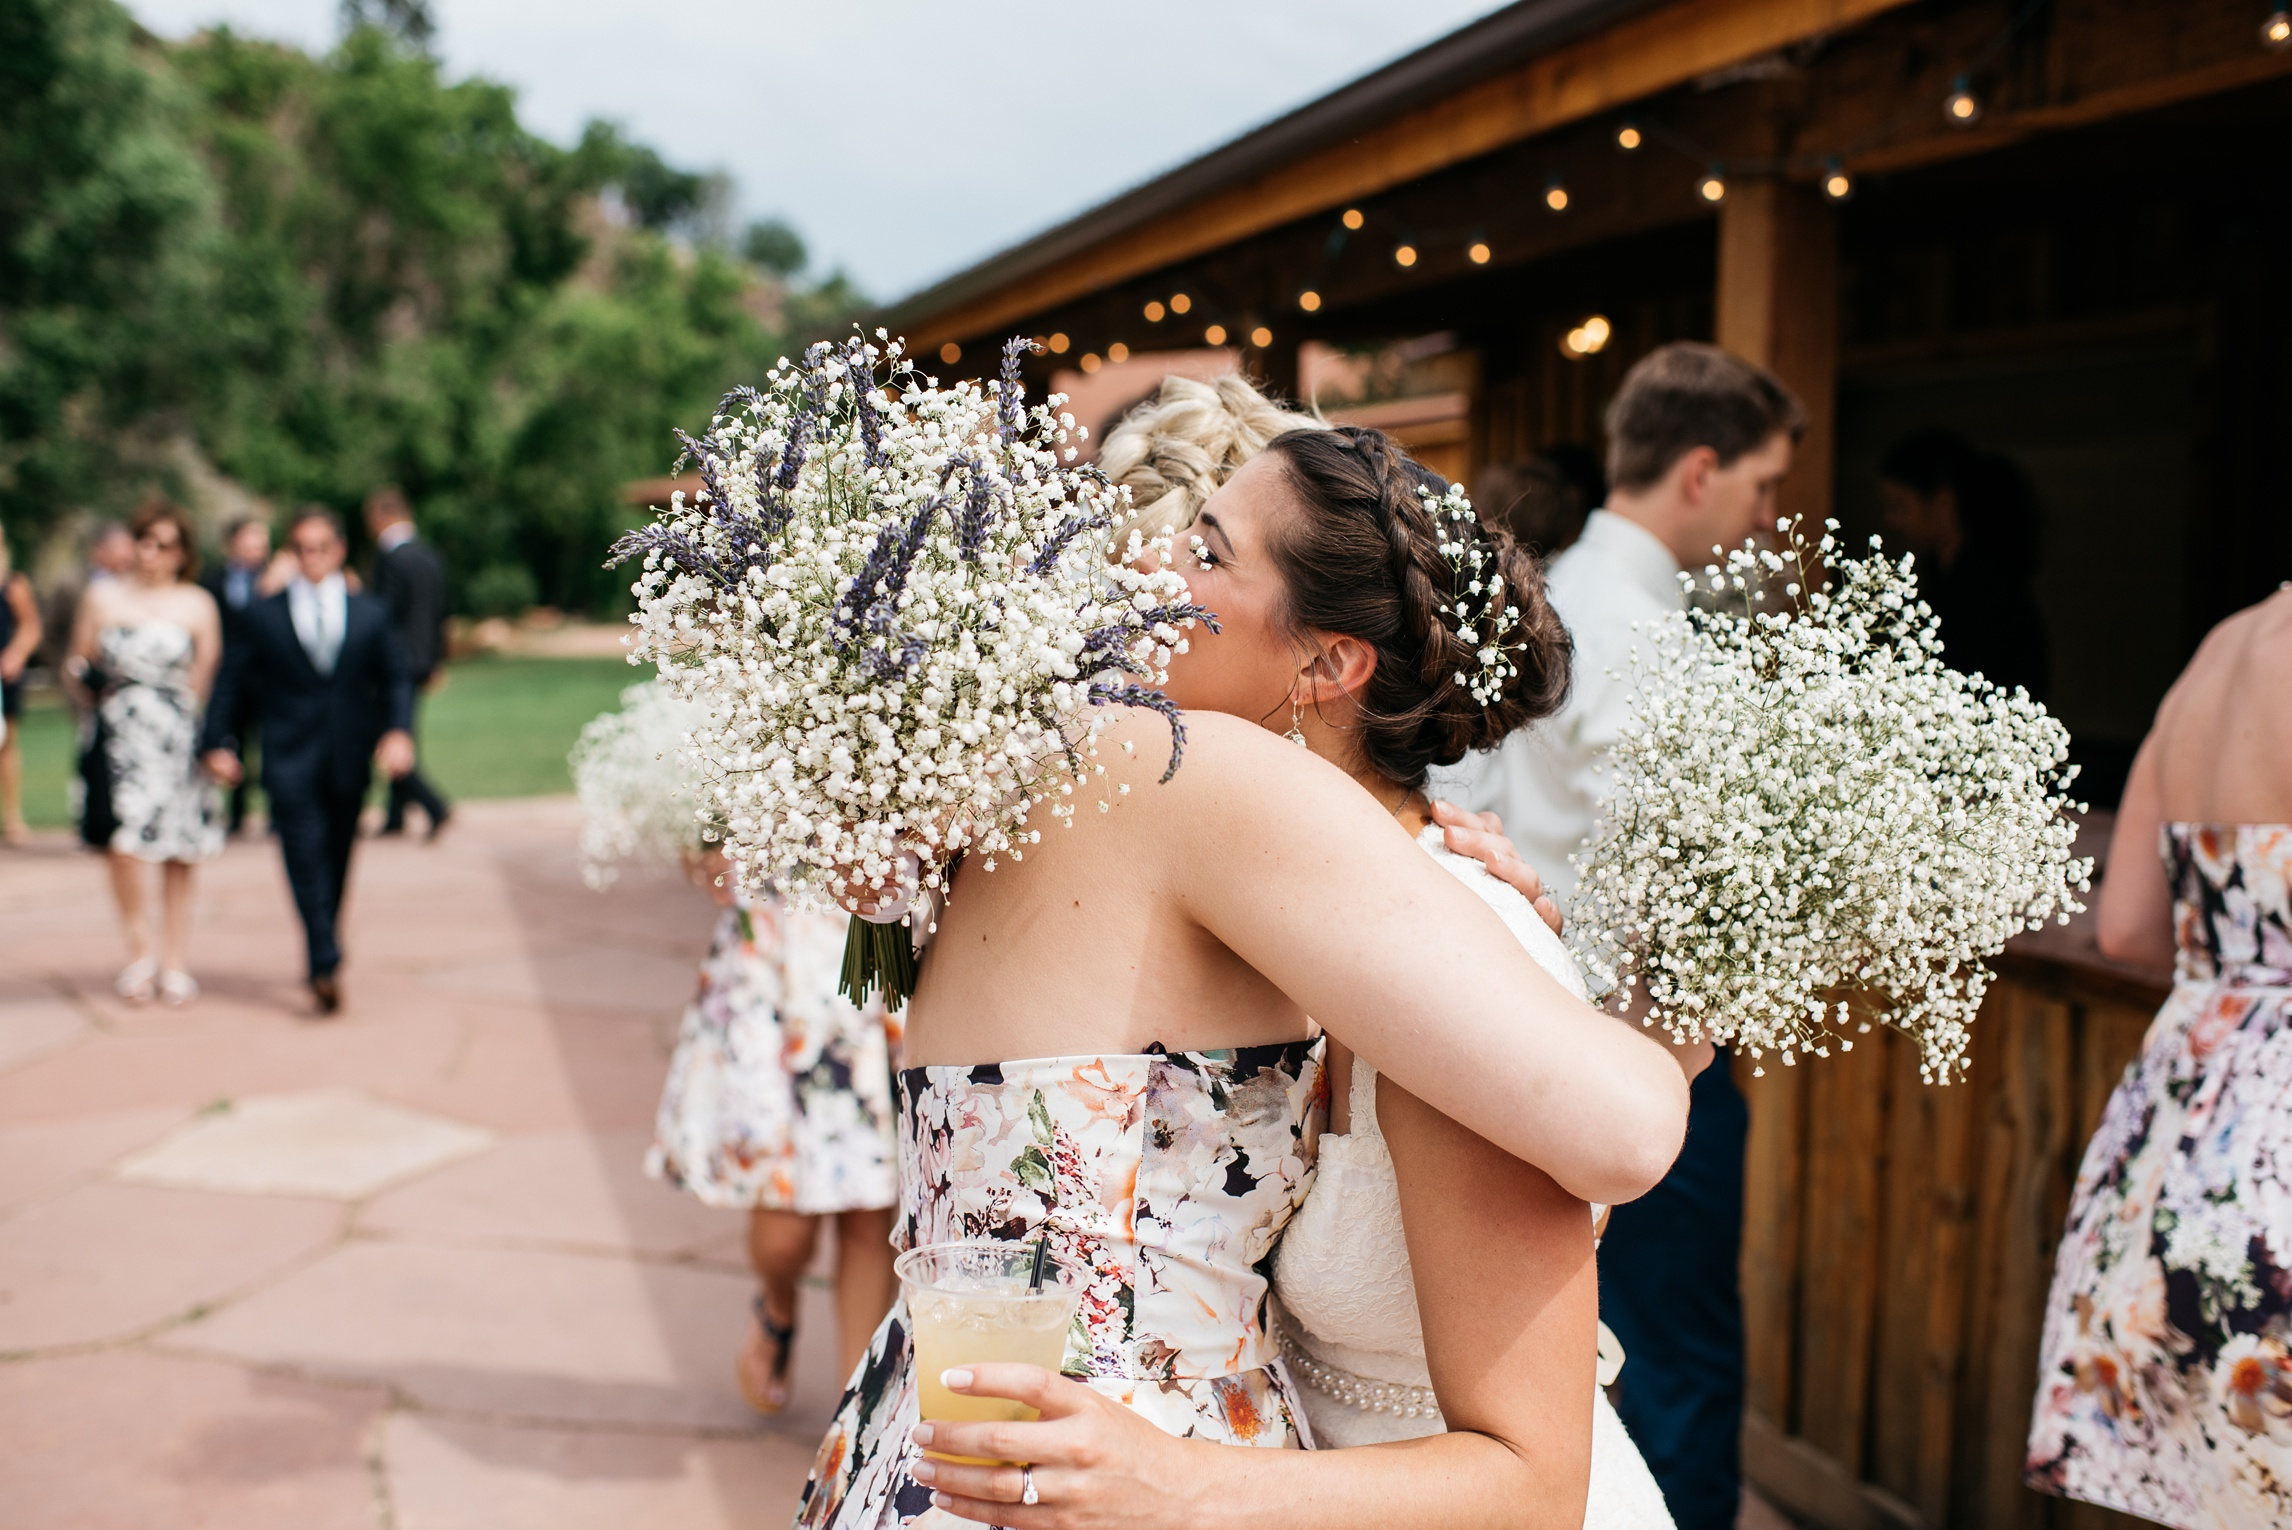 A bride and her bridesmaid embrace at a wedding at Planet Bluegrass in Lyons, Colorado. Wedding photography by Sonja Salzburg of Sonja K Photography.